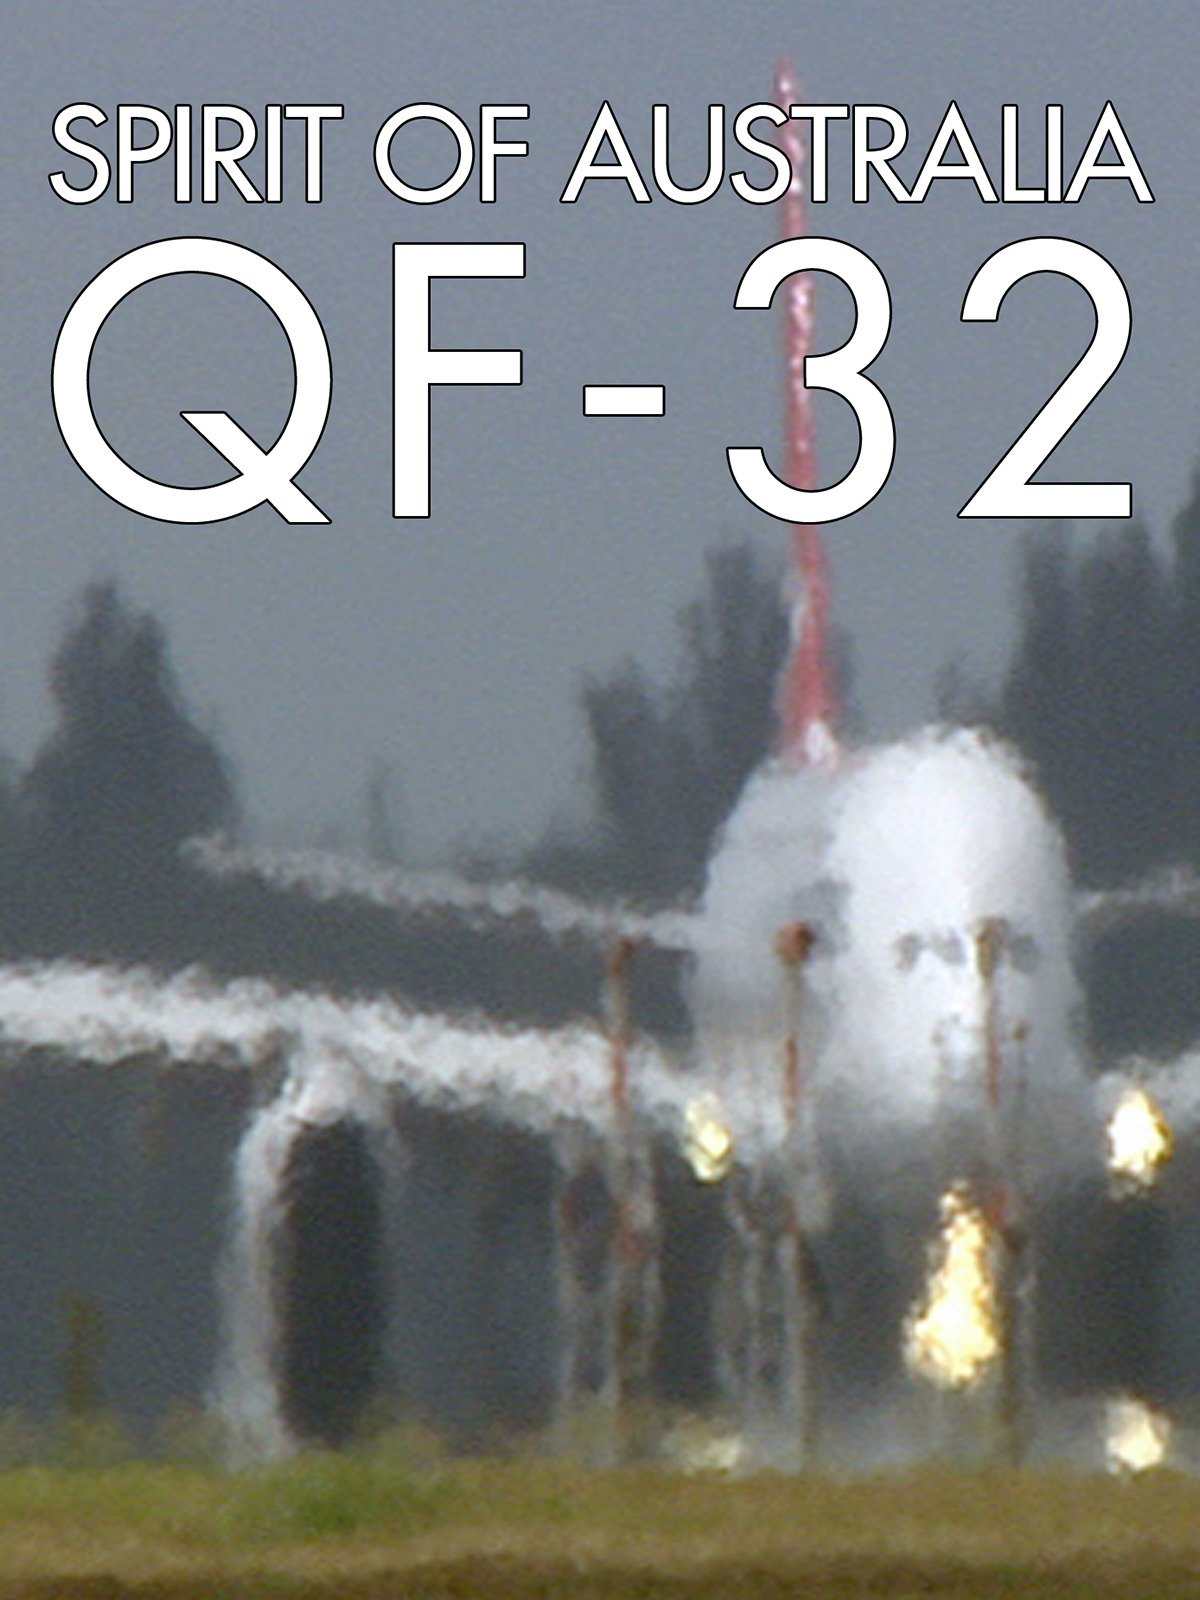 Qf 32 on Amazon Prime Video UK